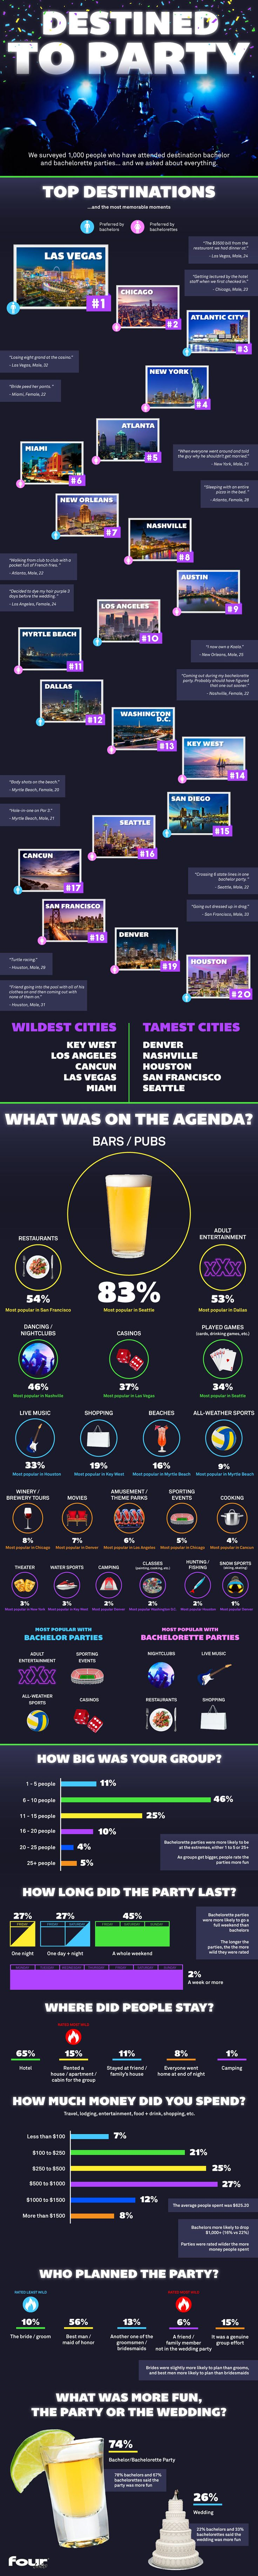 Top Bachelor and Bachelorette Party Stats